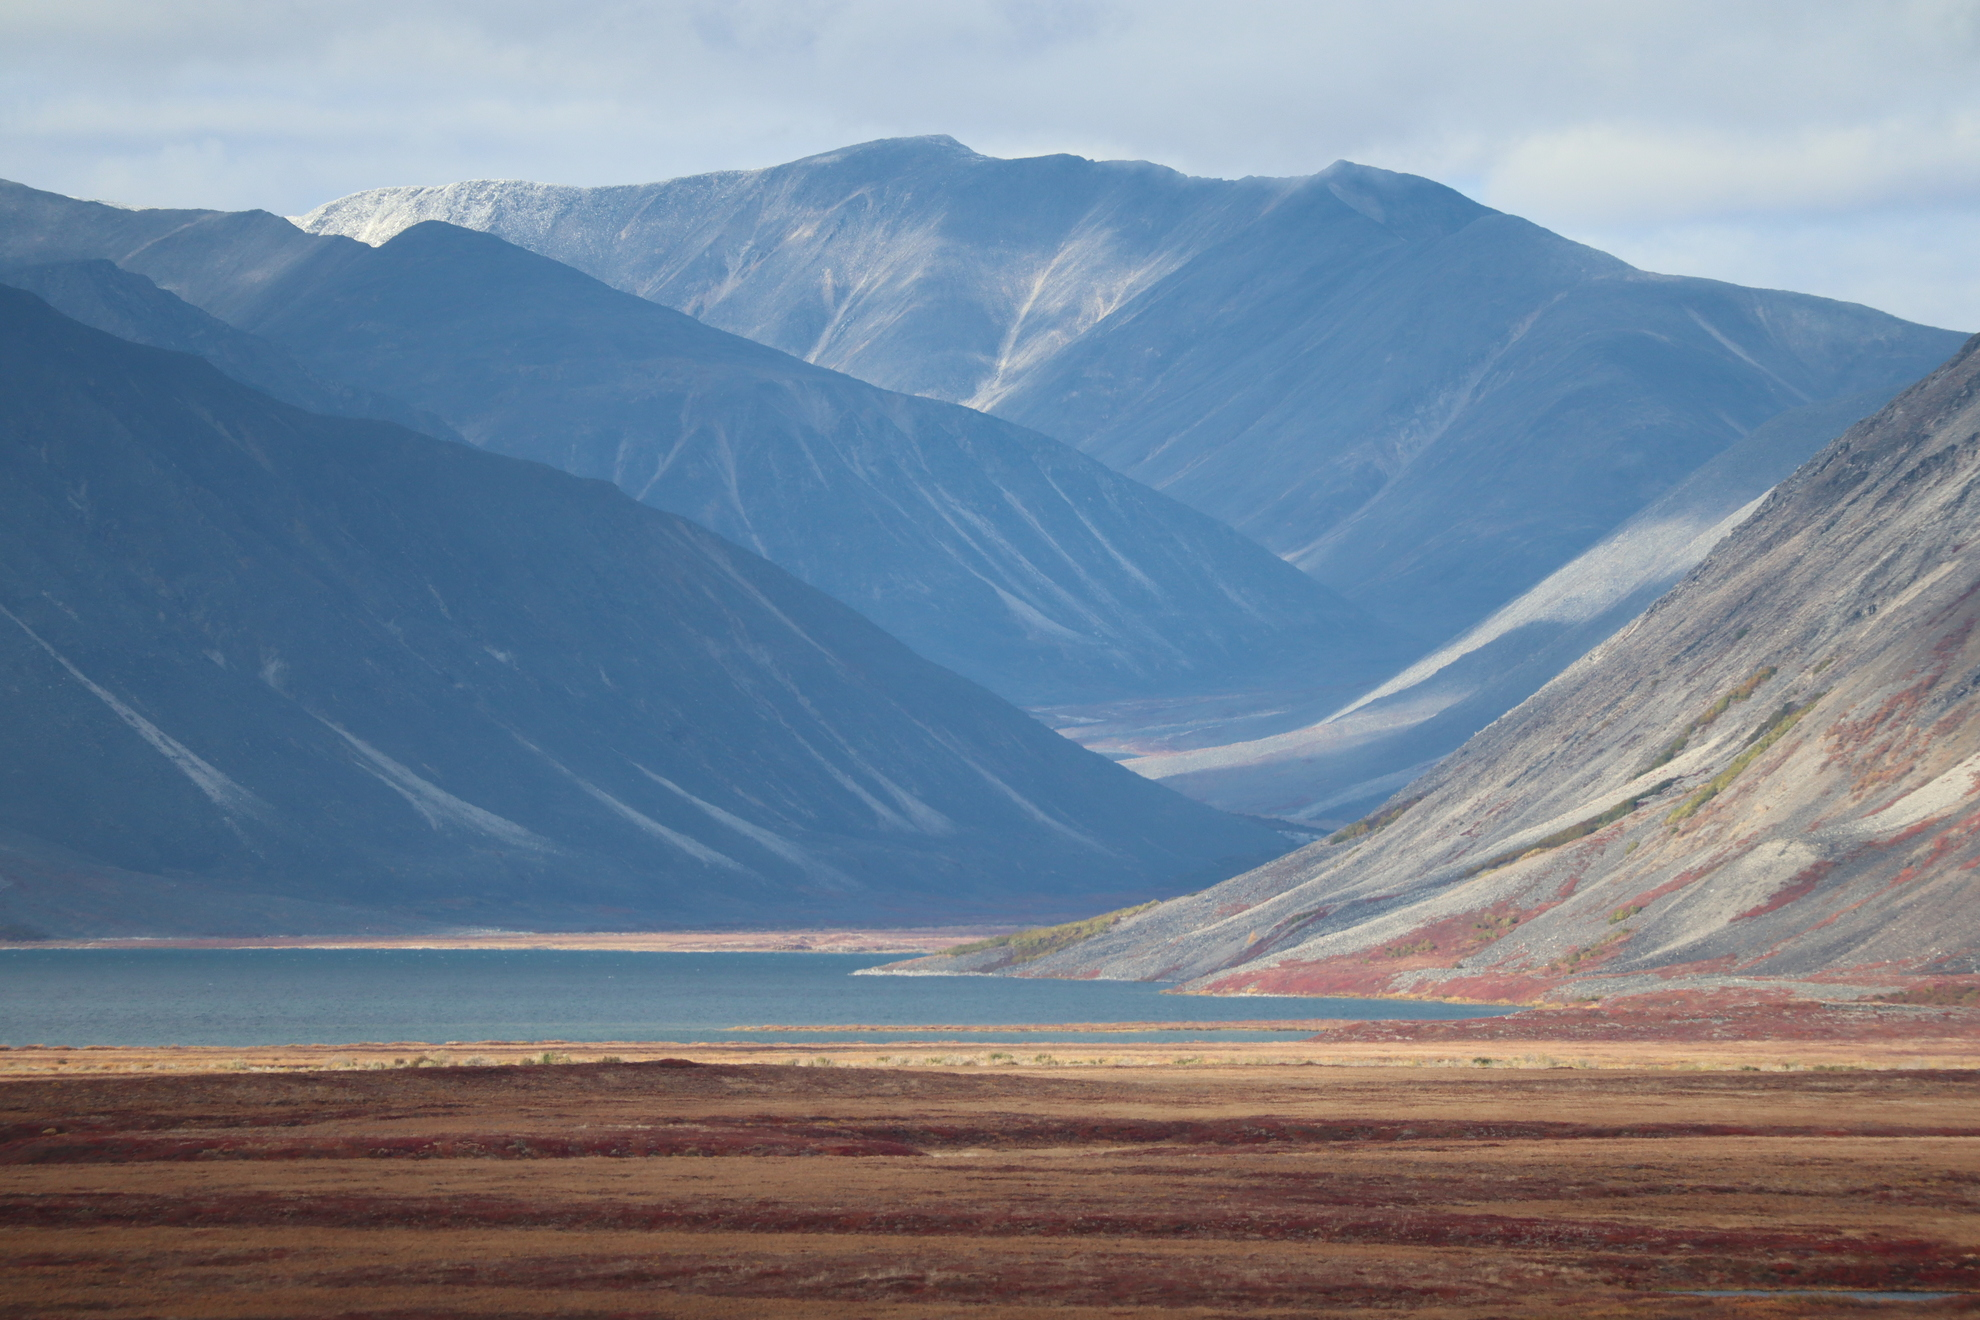 Anadyr Highlands in Chukotka 2020